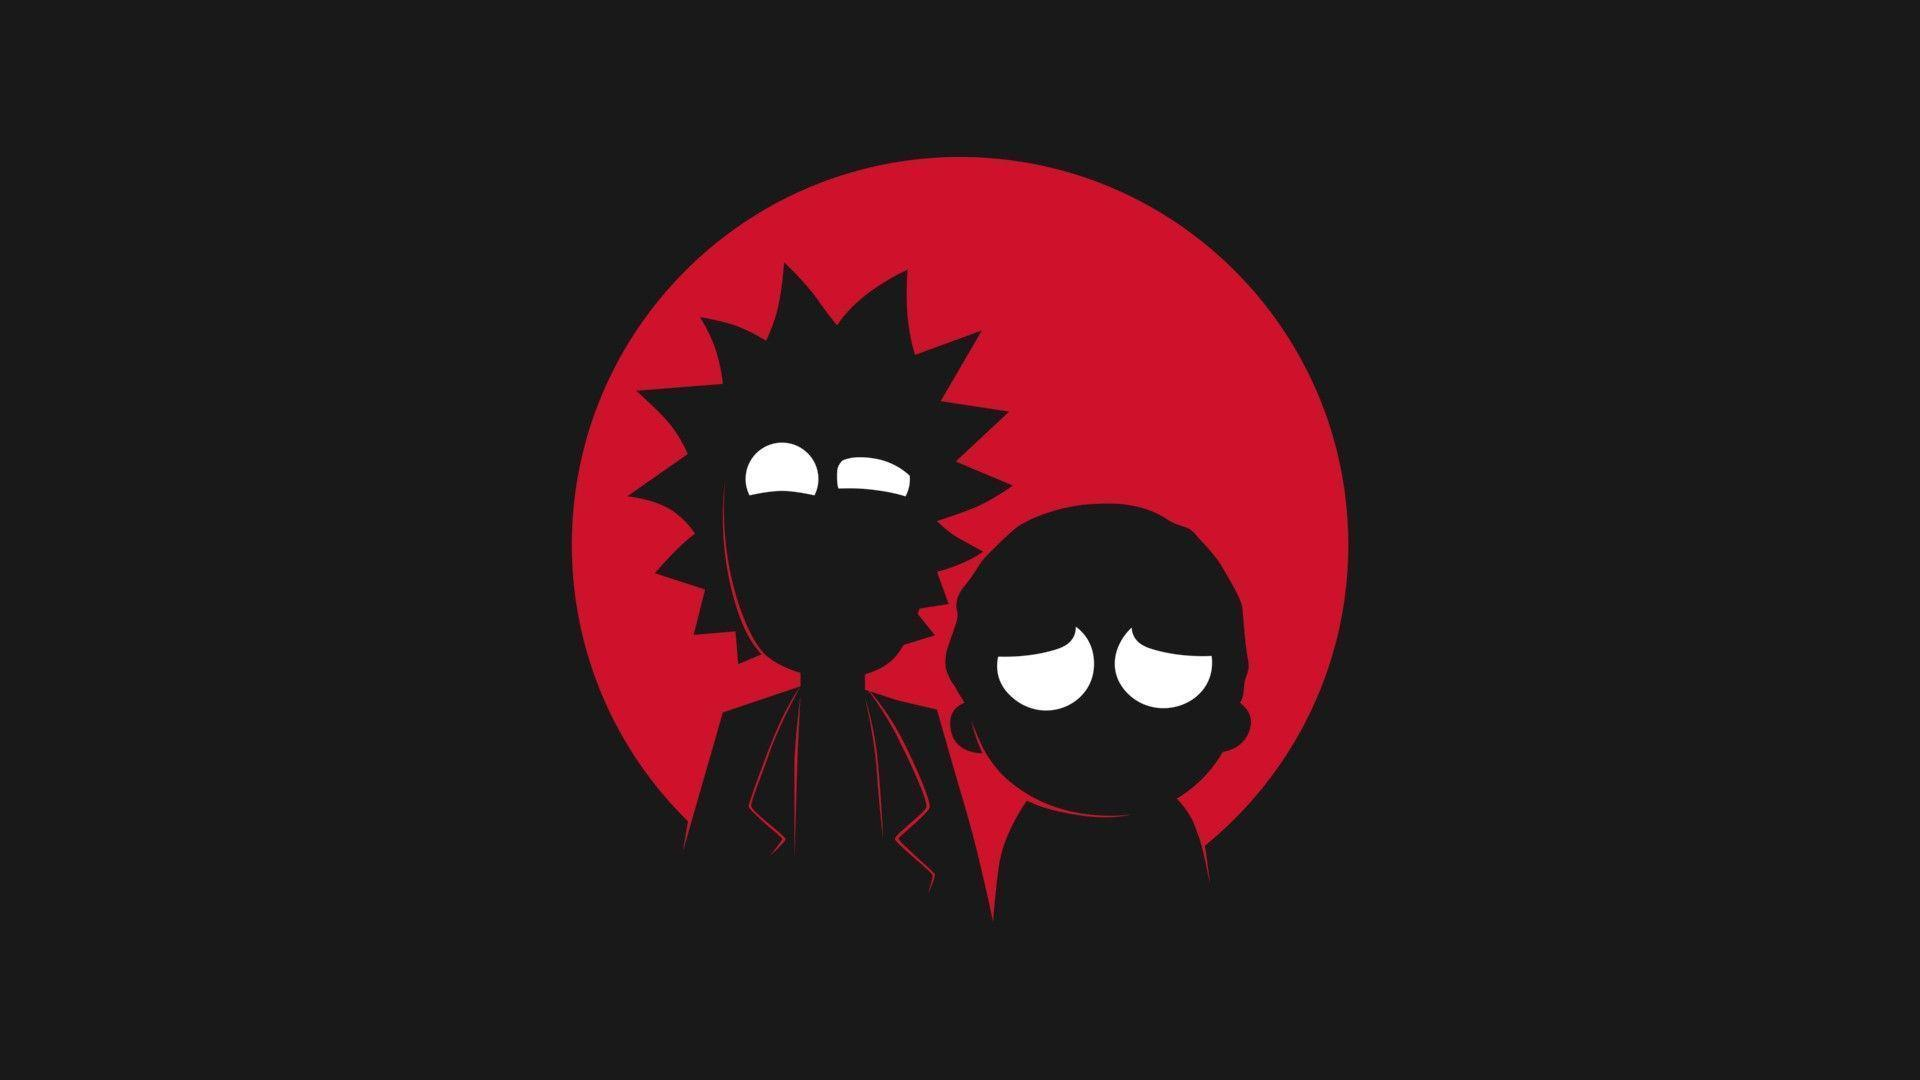 Black And White Rick And Morty Wallpaper Posted By Zoey Thompson